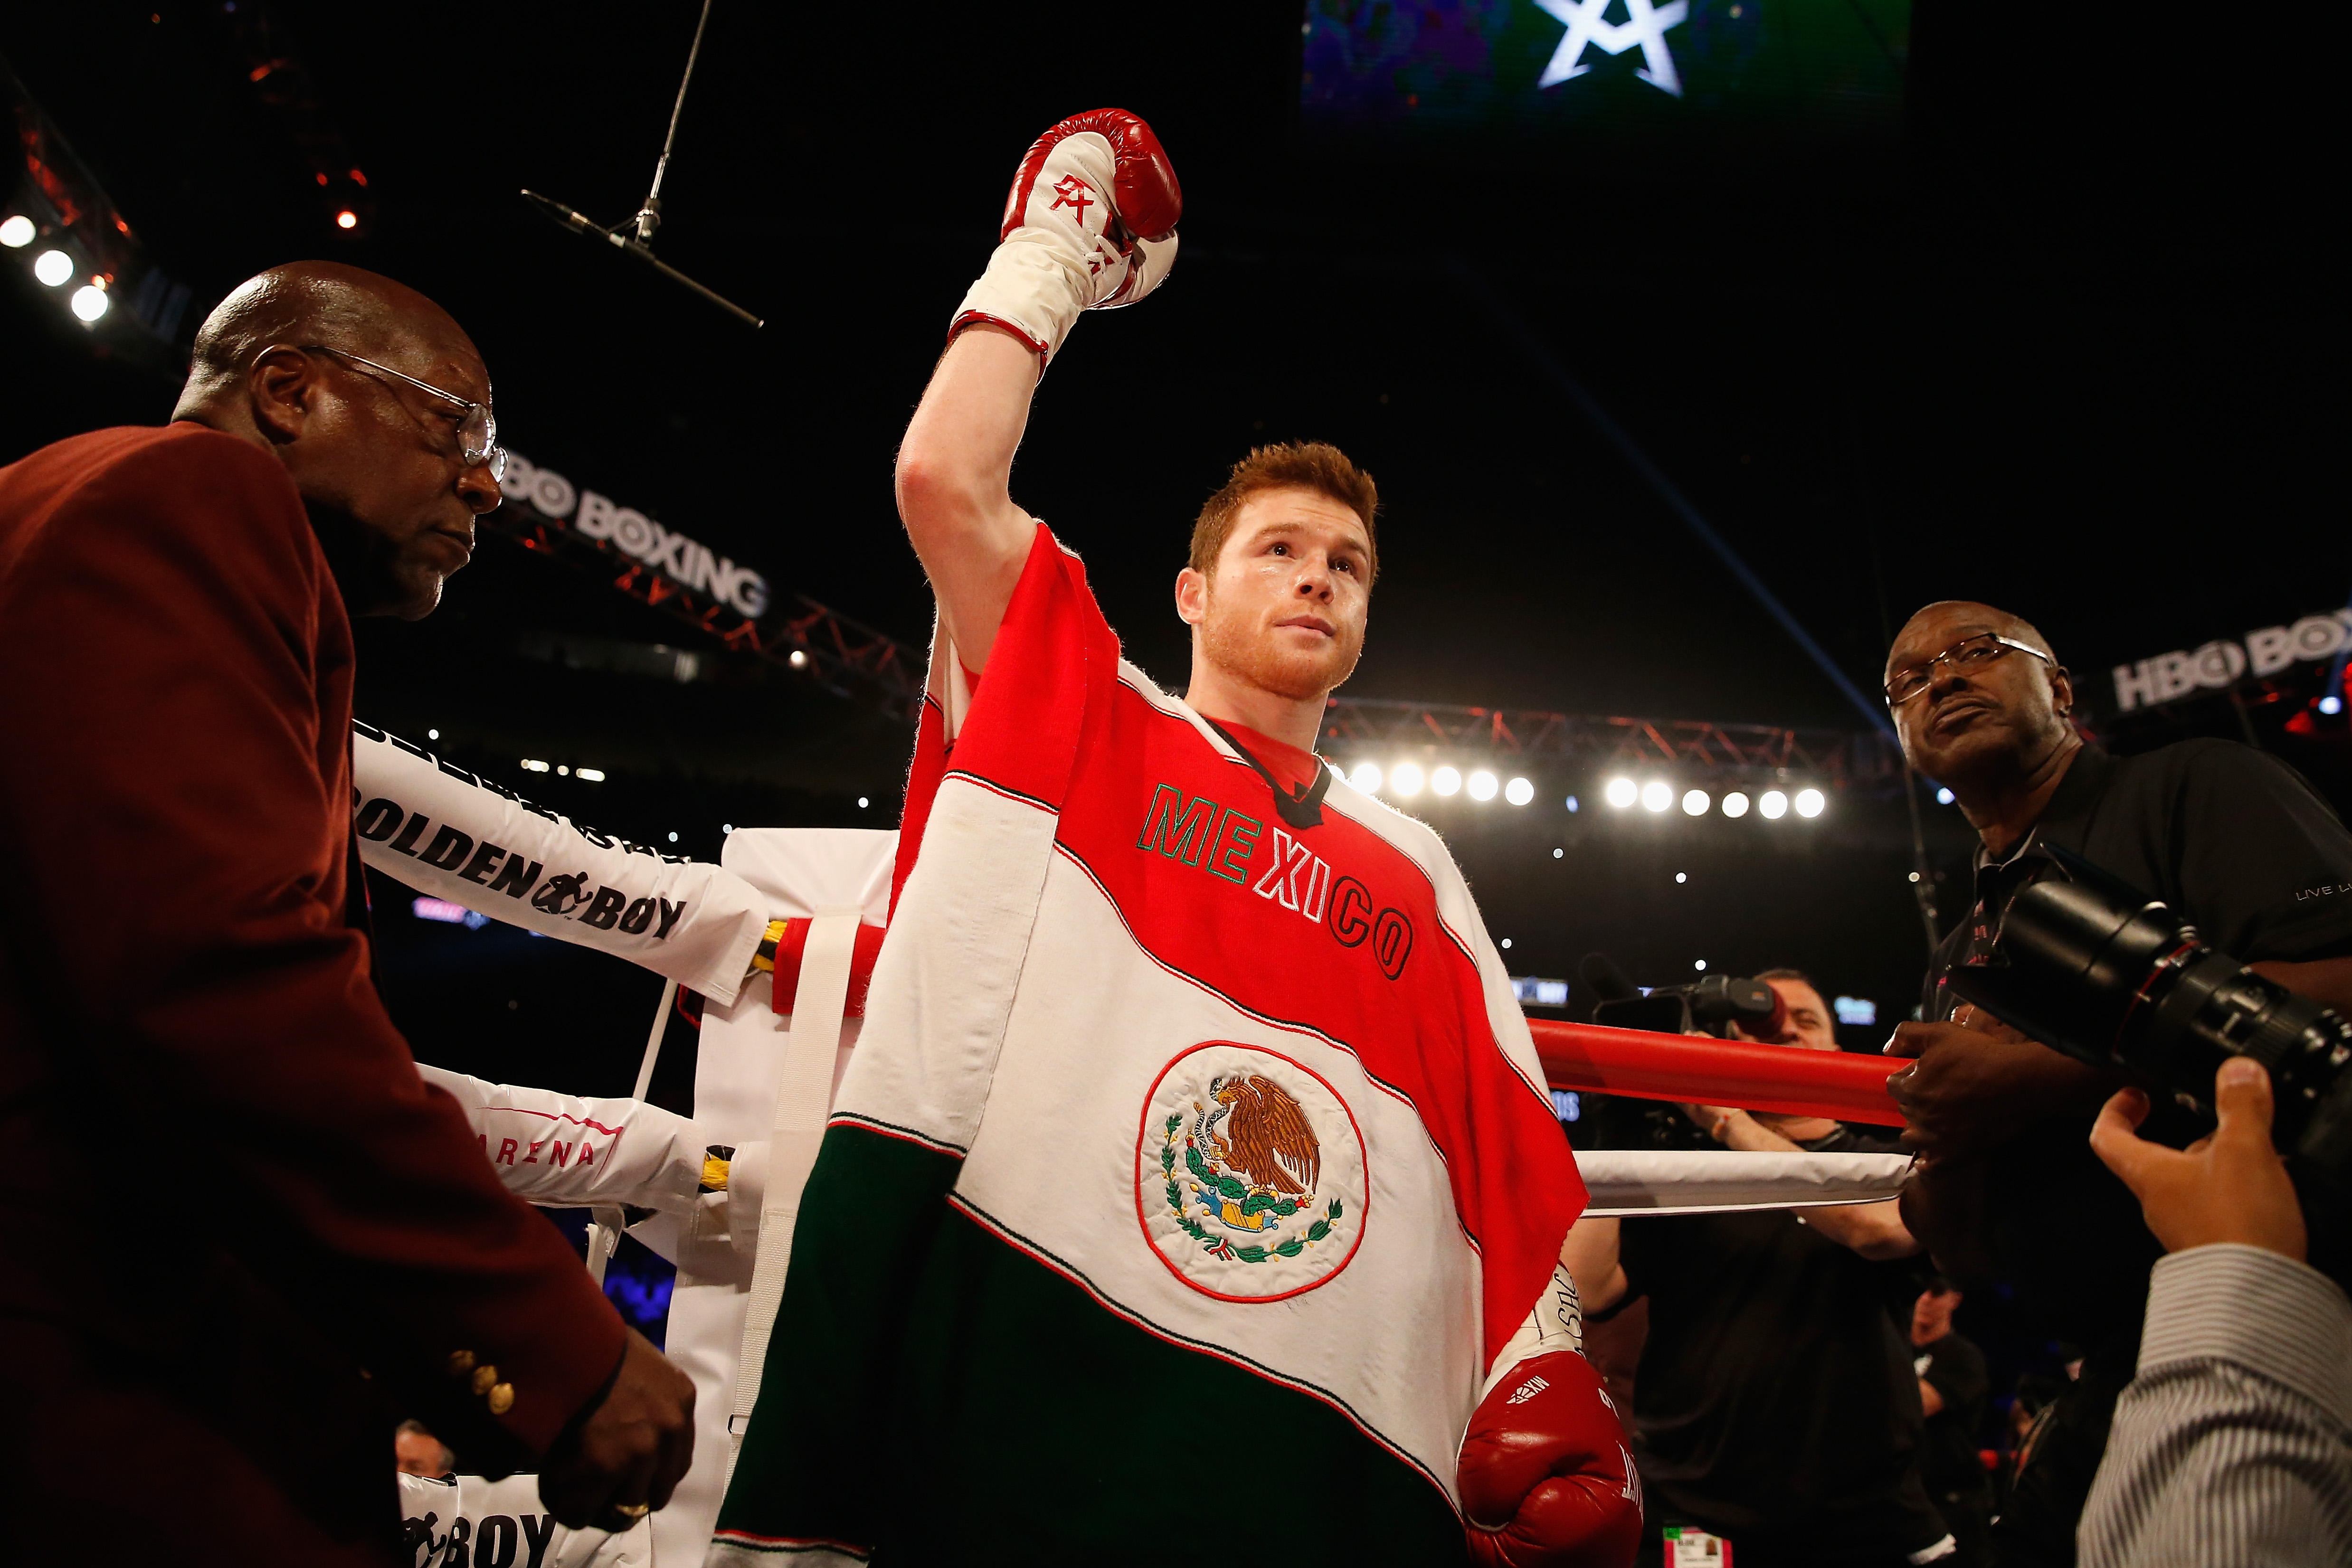 Tale Tape Ali Frazier Boxing Measurements additionally Nike Machomai Boxing Shoes Black Hi Cut together with Andrei Arlovski 270 likewise Mahmoud Hassan 95543 in addition Canelo Vs Smith Fight Preview And Analysis. on oscar de la hoya height